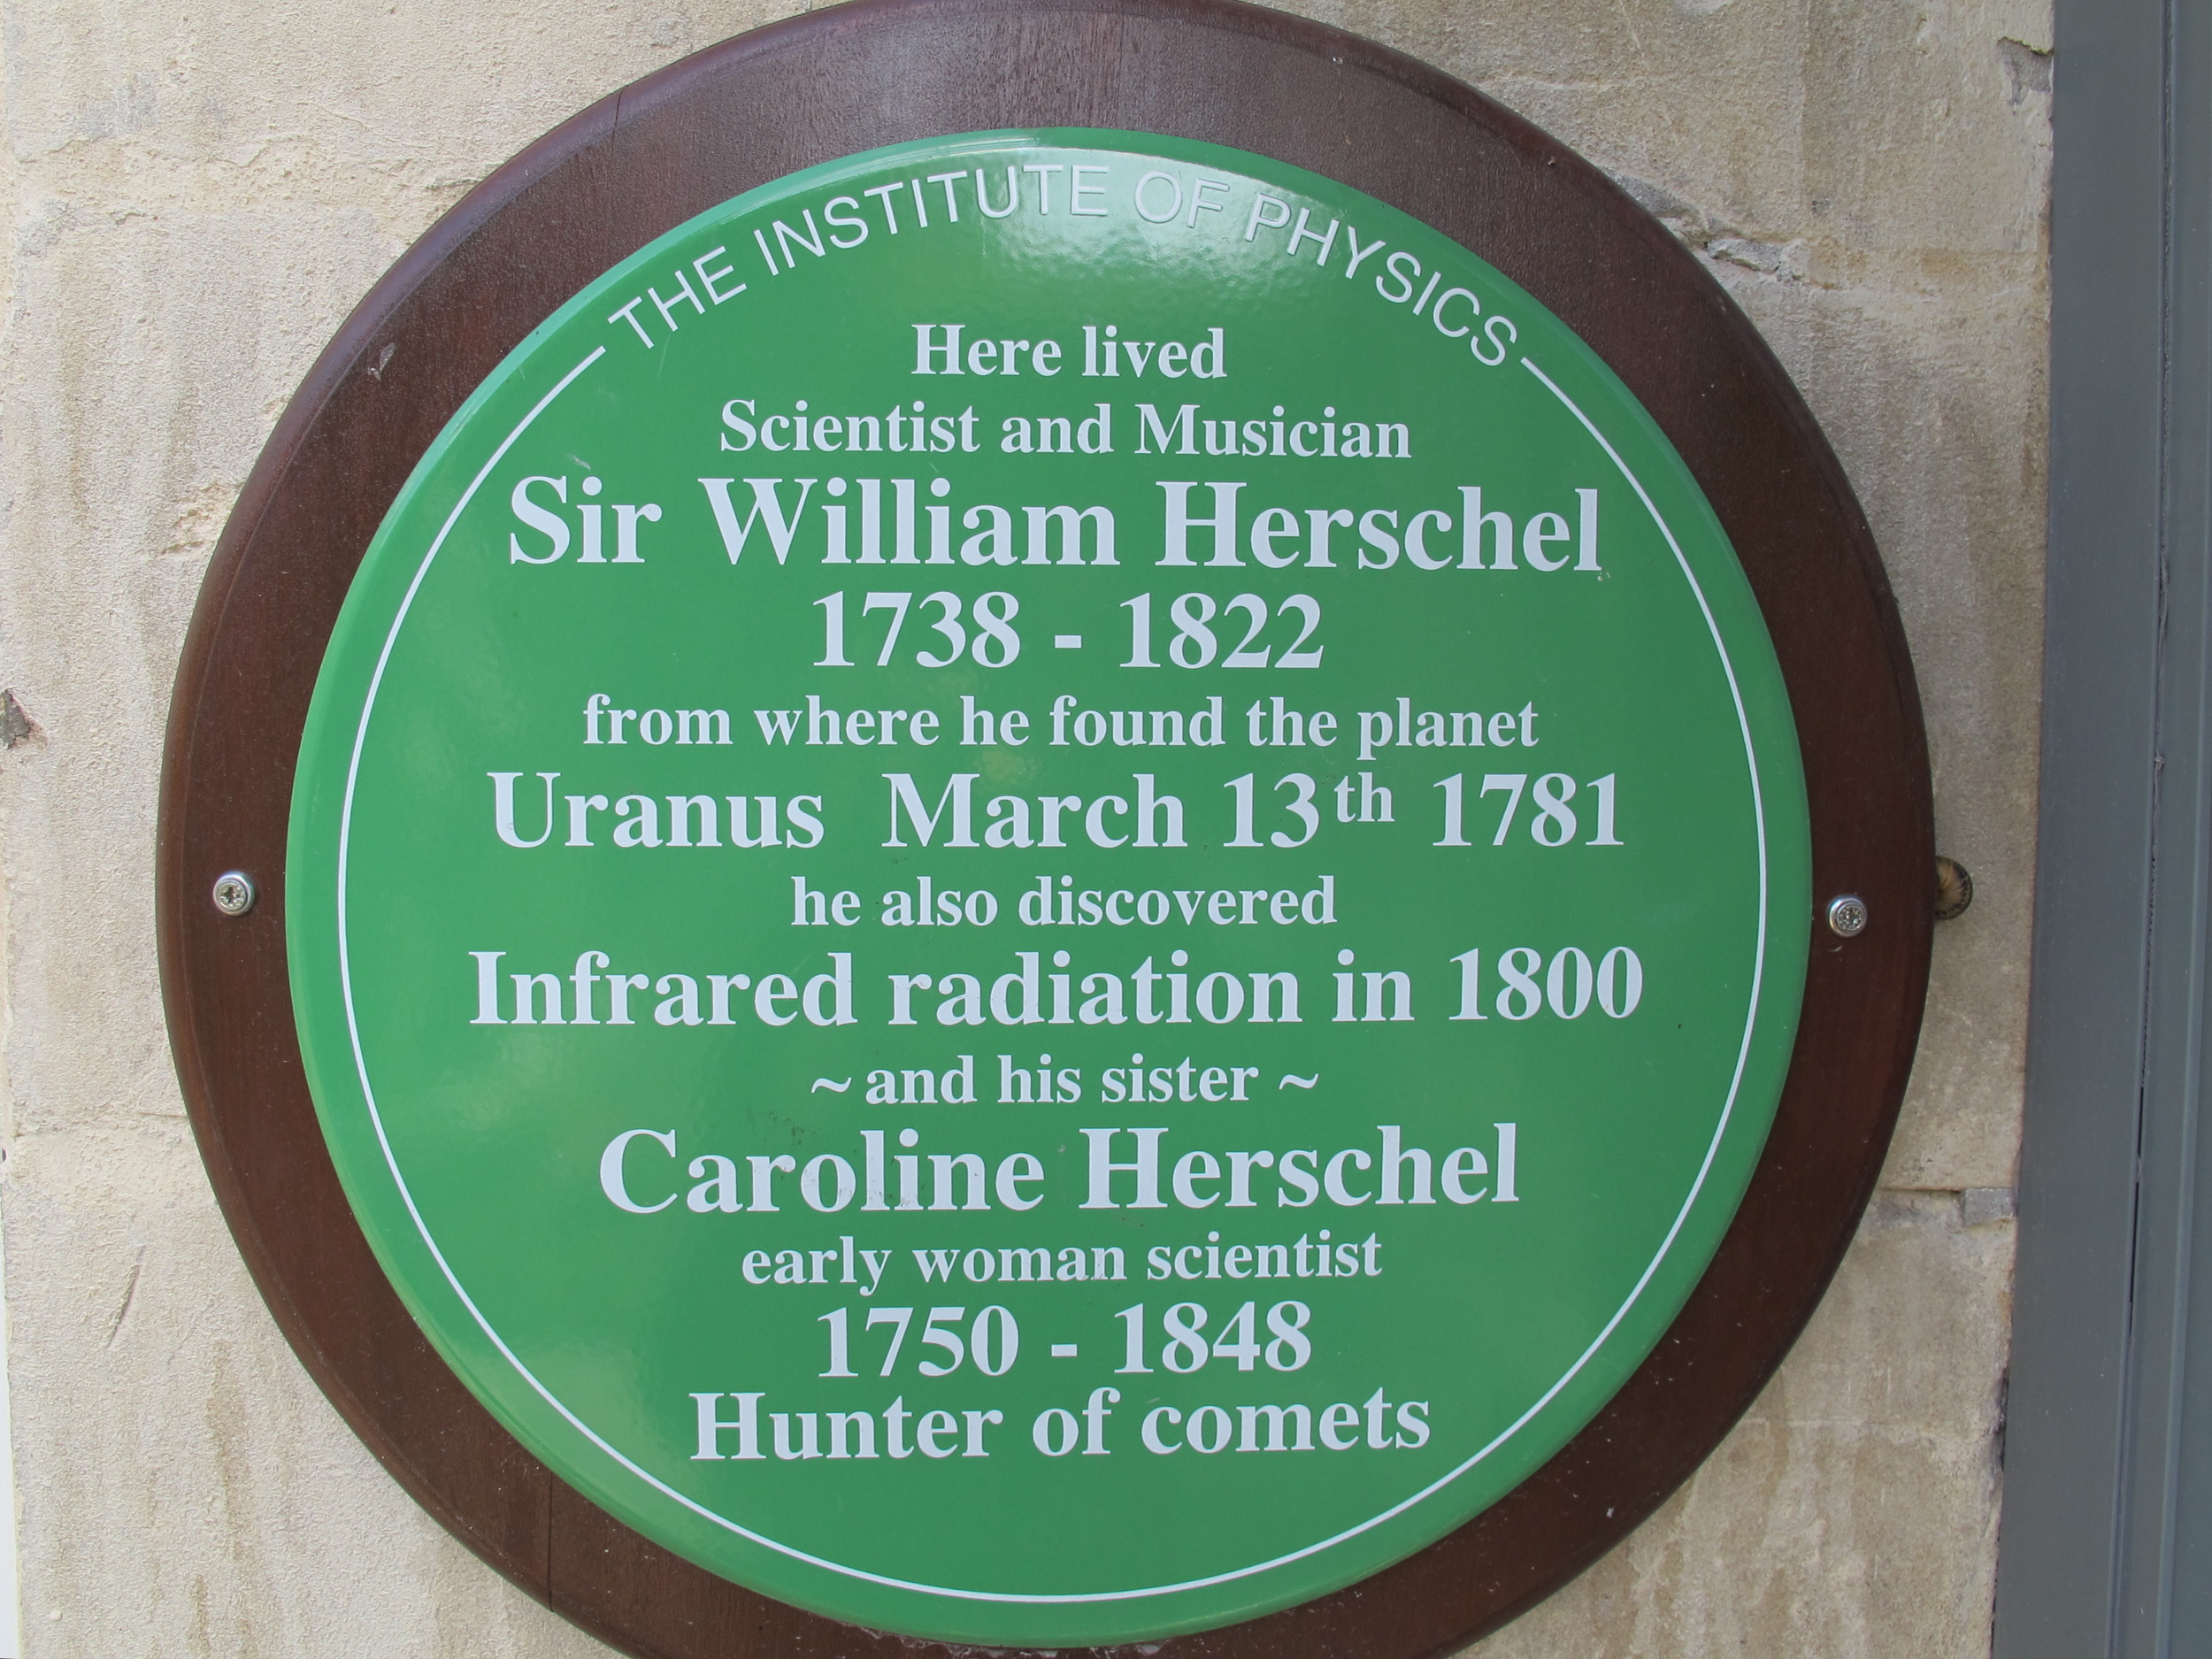 We visited the former home of William and Caroline Herschel in Bath and stood on the spot (in a raised backyard garden) from which William—the greatest astronomer most Americans have never heard of—looking through his homemade, 7-foot-long wooden telescope, discovered Uranus. He called it the Georgian planet, after King George III, but other European star-gazers won the battle to officially christen it, and named it after the father of Saturn and grandfather of Jupiter in Roman mythology. Herschel later used a piece of crystal glass from a chandelier in the house to split the sun's rays and discover infrared light.